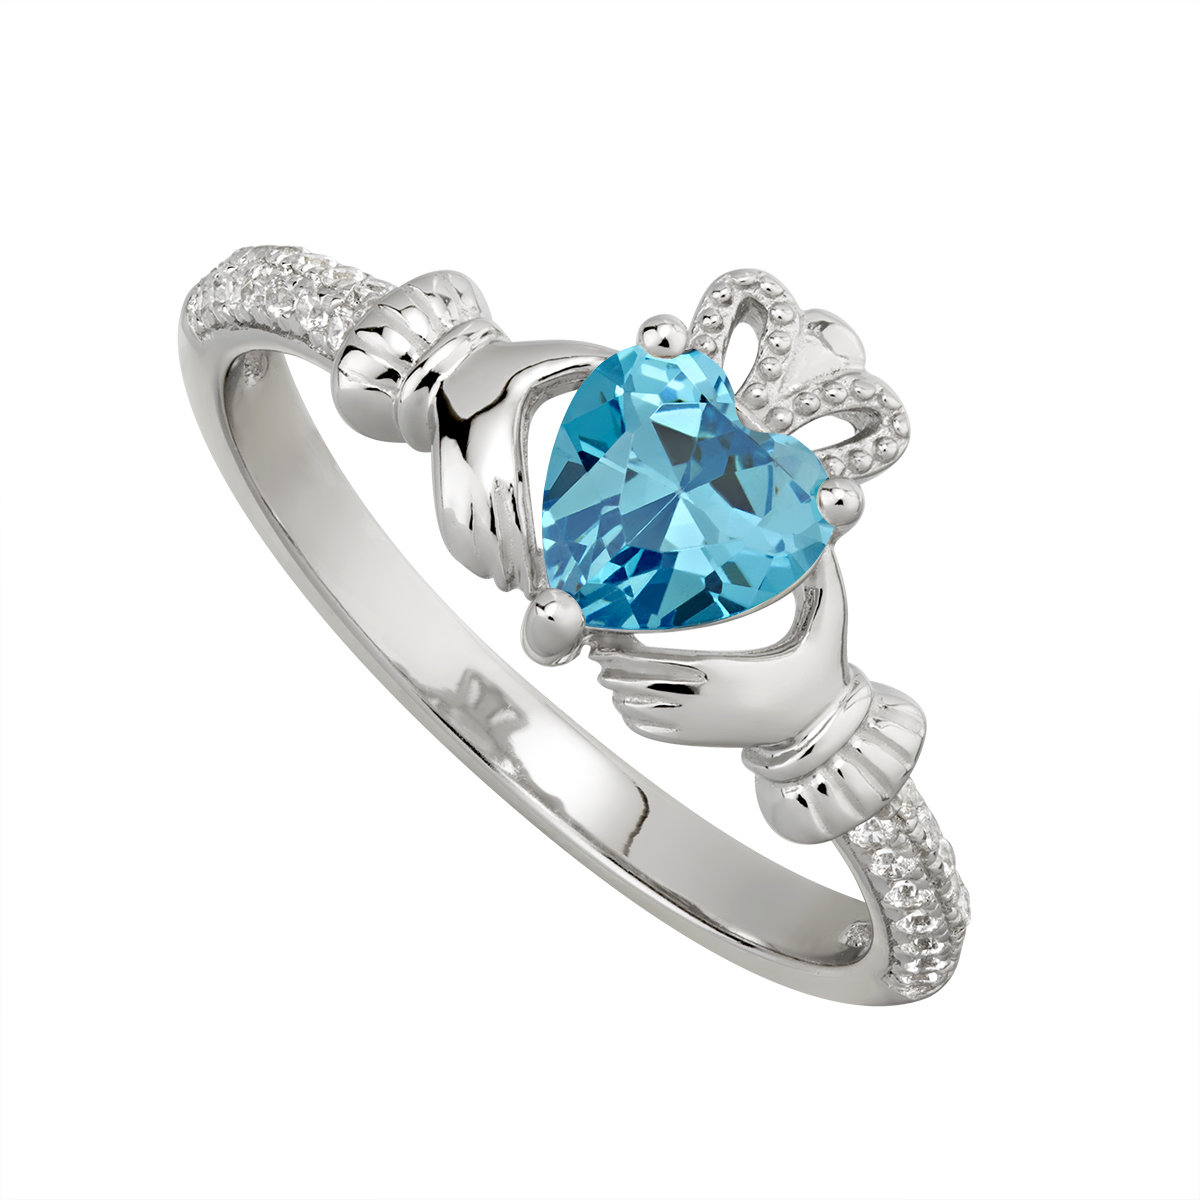 sterling silver claddagh ring march birthstone s2106203 from Solvar